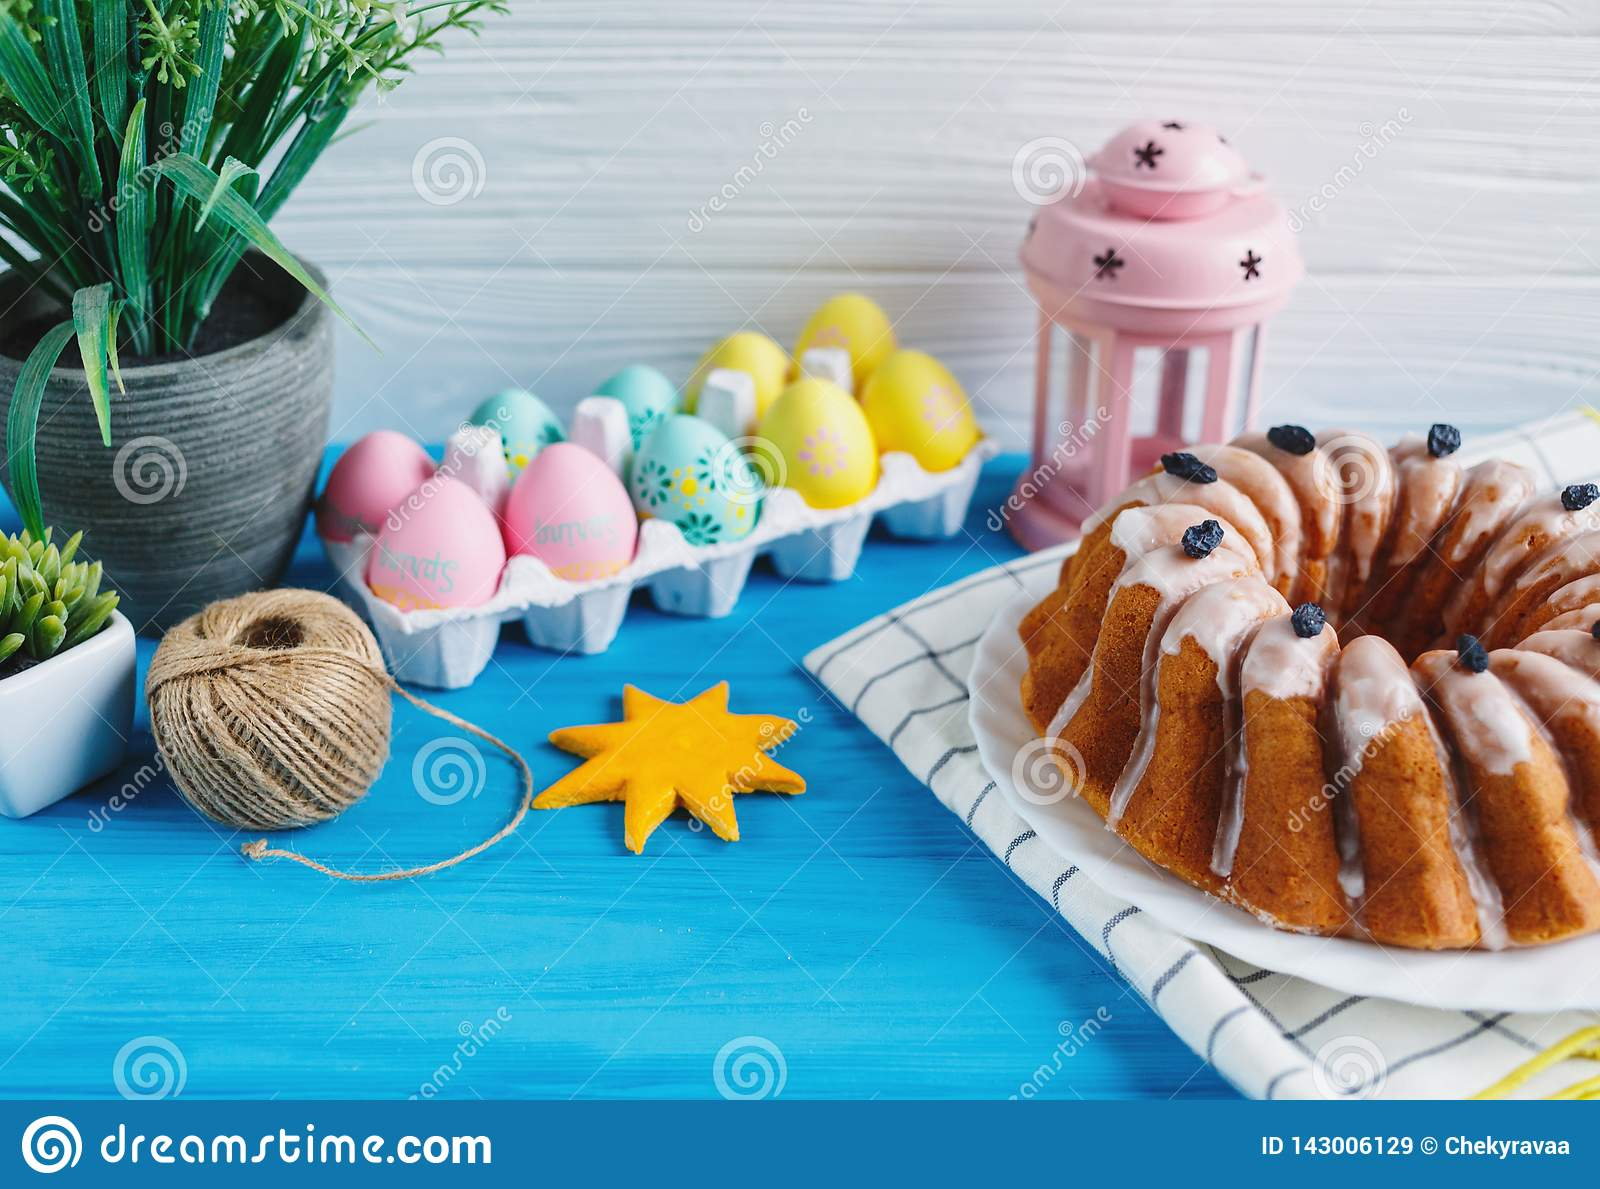 Big plate with cake and hand painted colorful eggs, on towel on blue background. Close up. Decoration for Easter,